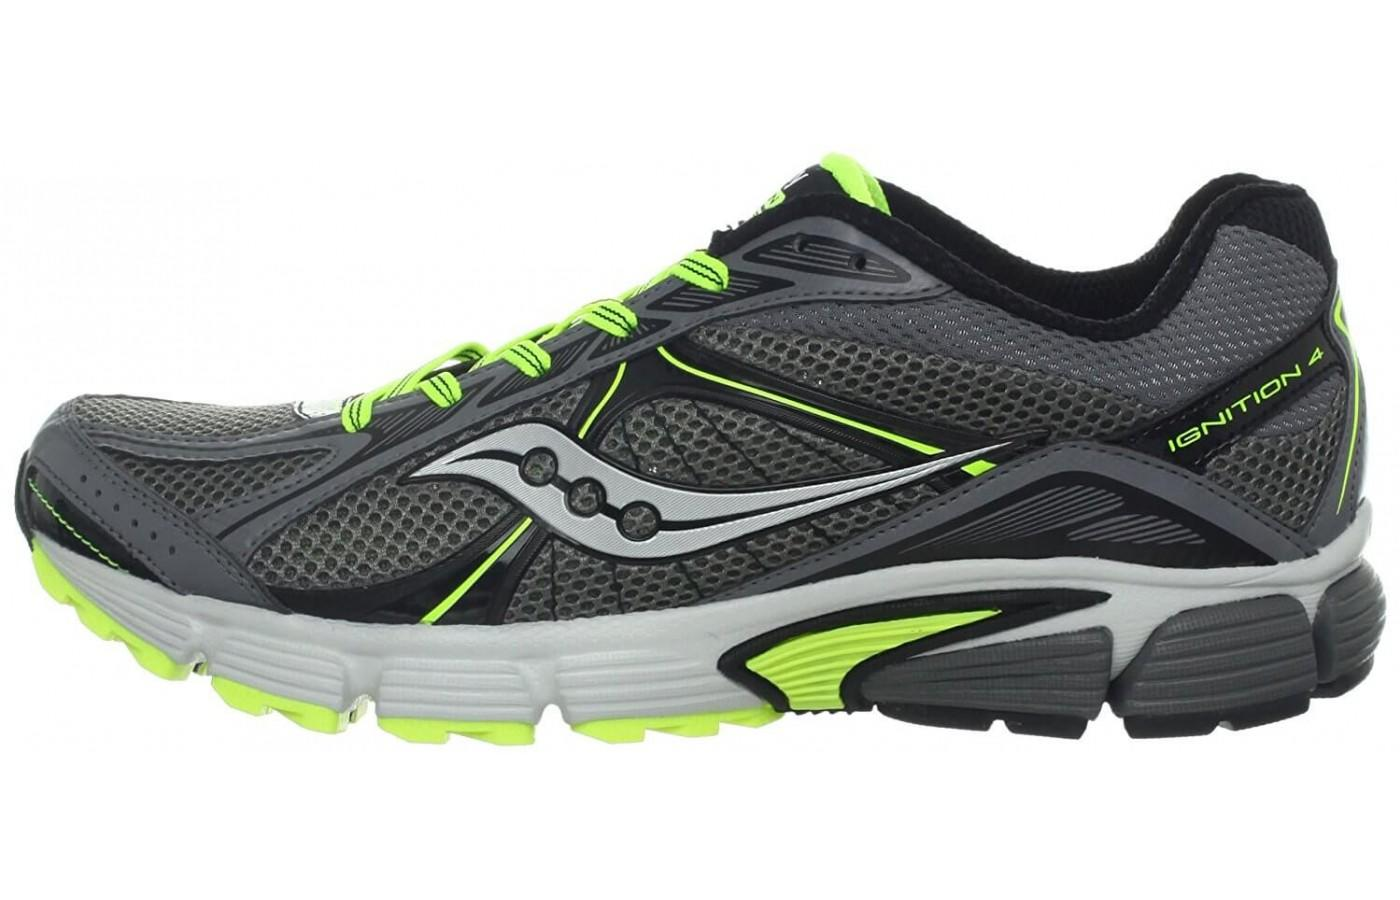 Saucony Ignition 4 had a durable rubber outsole that provides strong traction